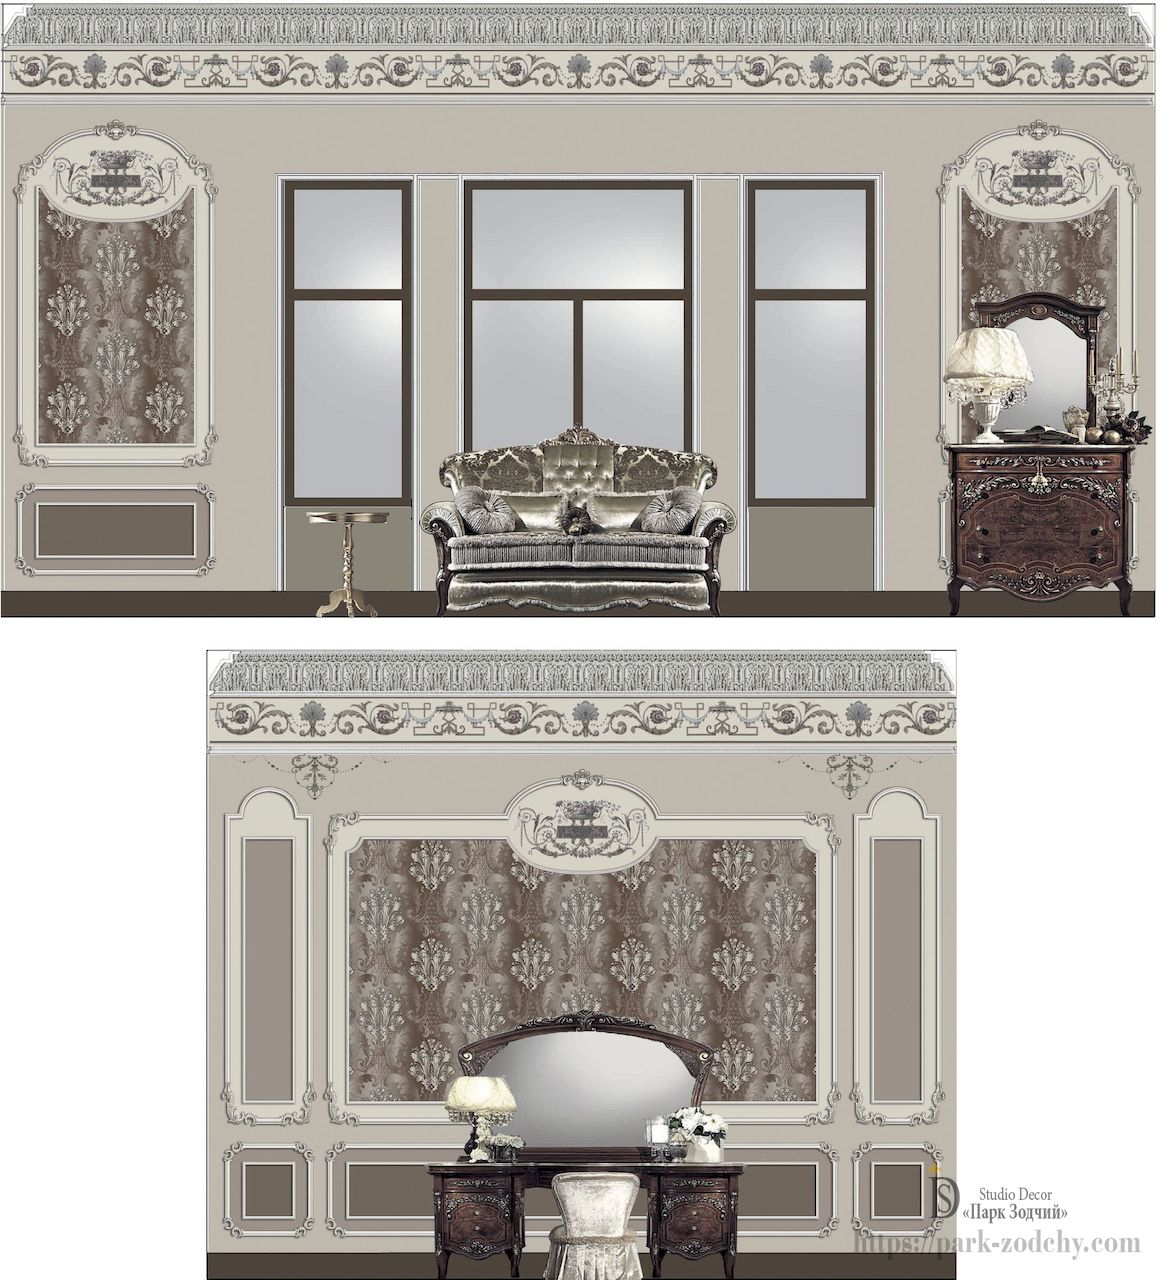 Scan the walls of the bedroom in the Baroque style with paintings